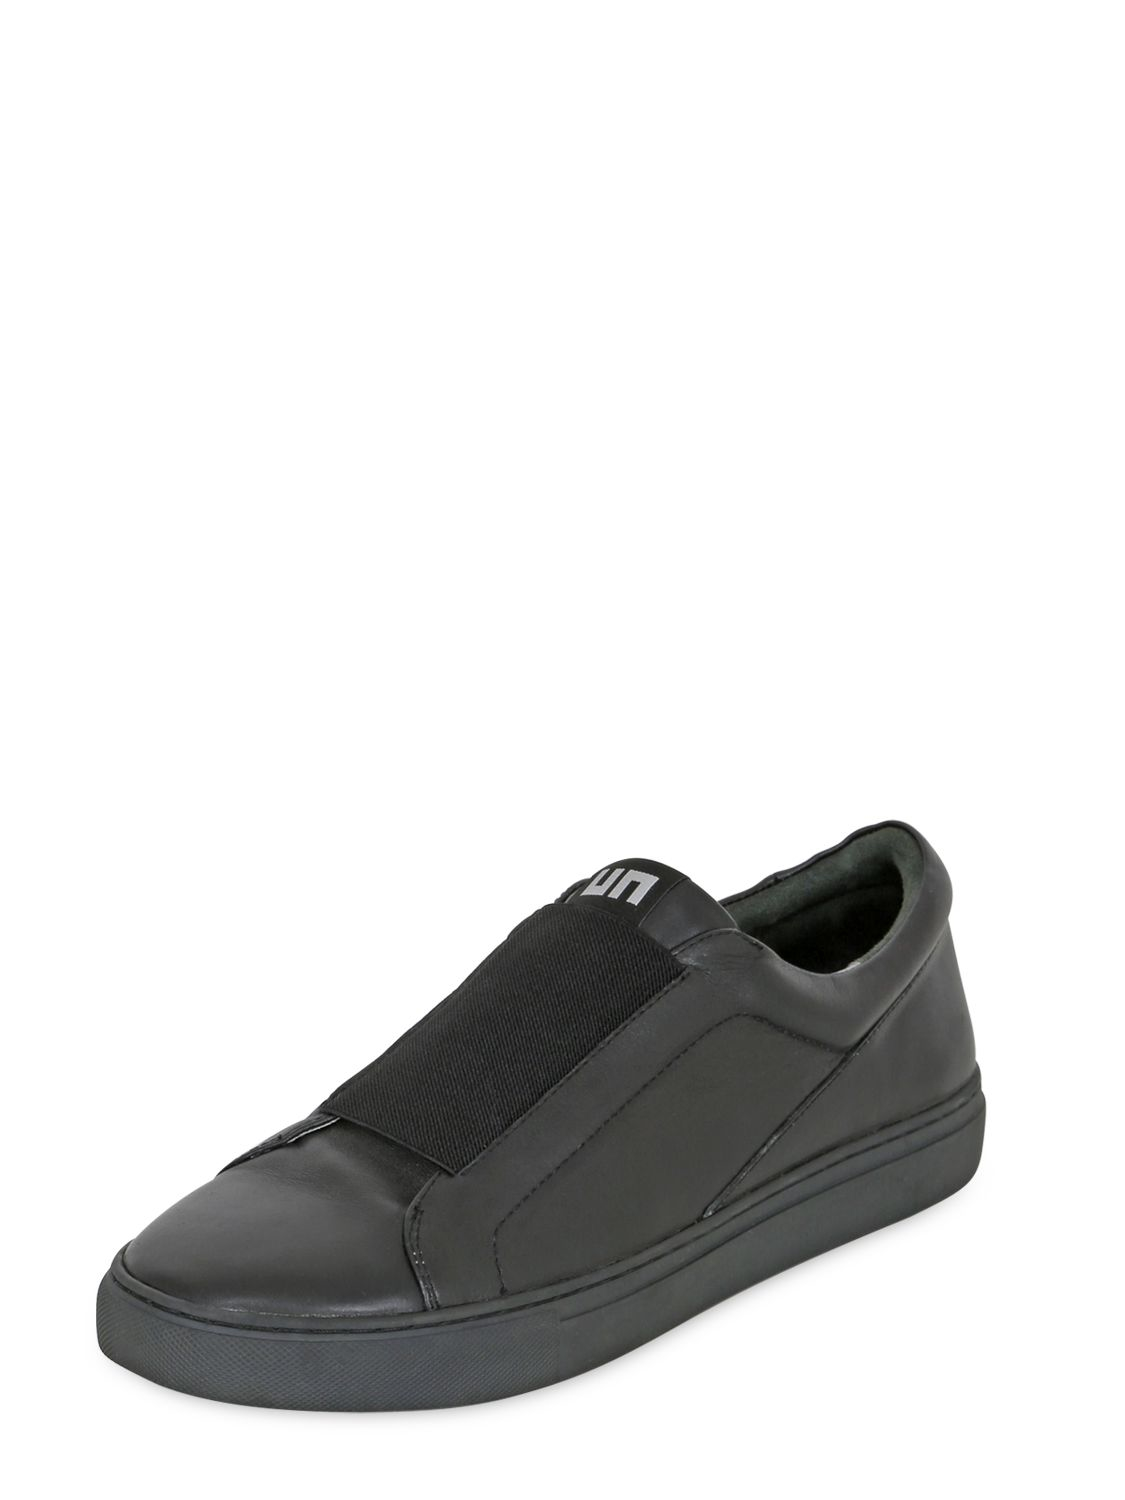 United Nude Stanley Nappa Leather Slip-on Sneakers in Black for Men